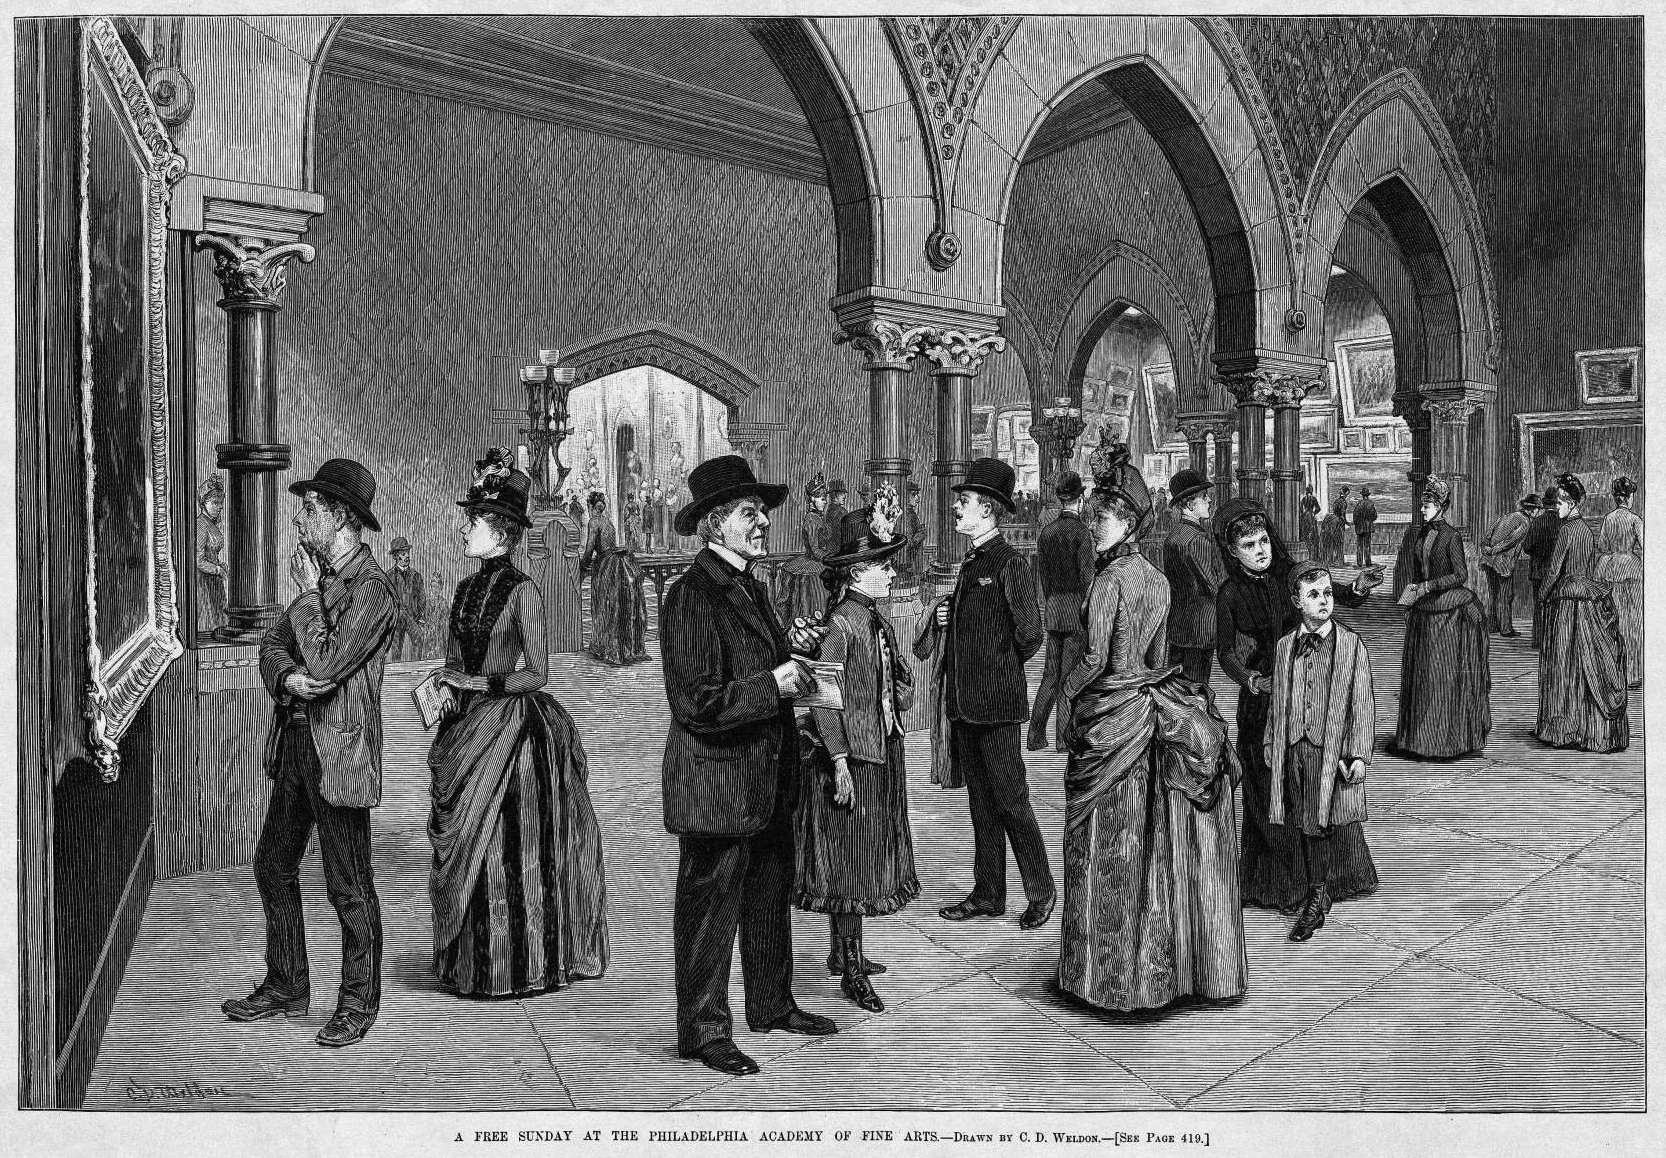 C. D. Weldon, A Free Sunday at the Philadelphia Academy of Fine Arts, Wood engraving published in Harper's Weekly, June 11, 1887